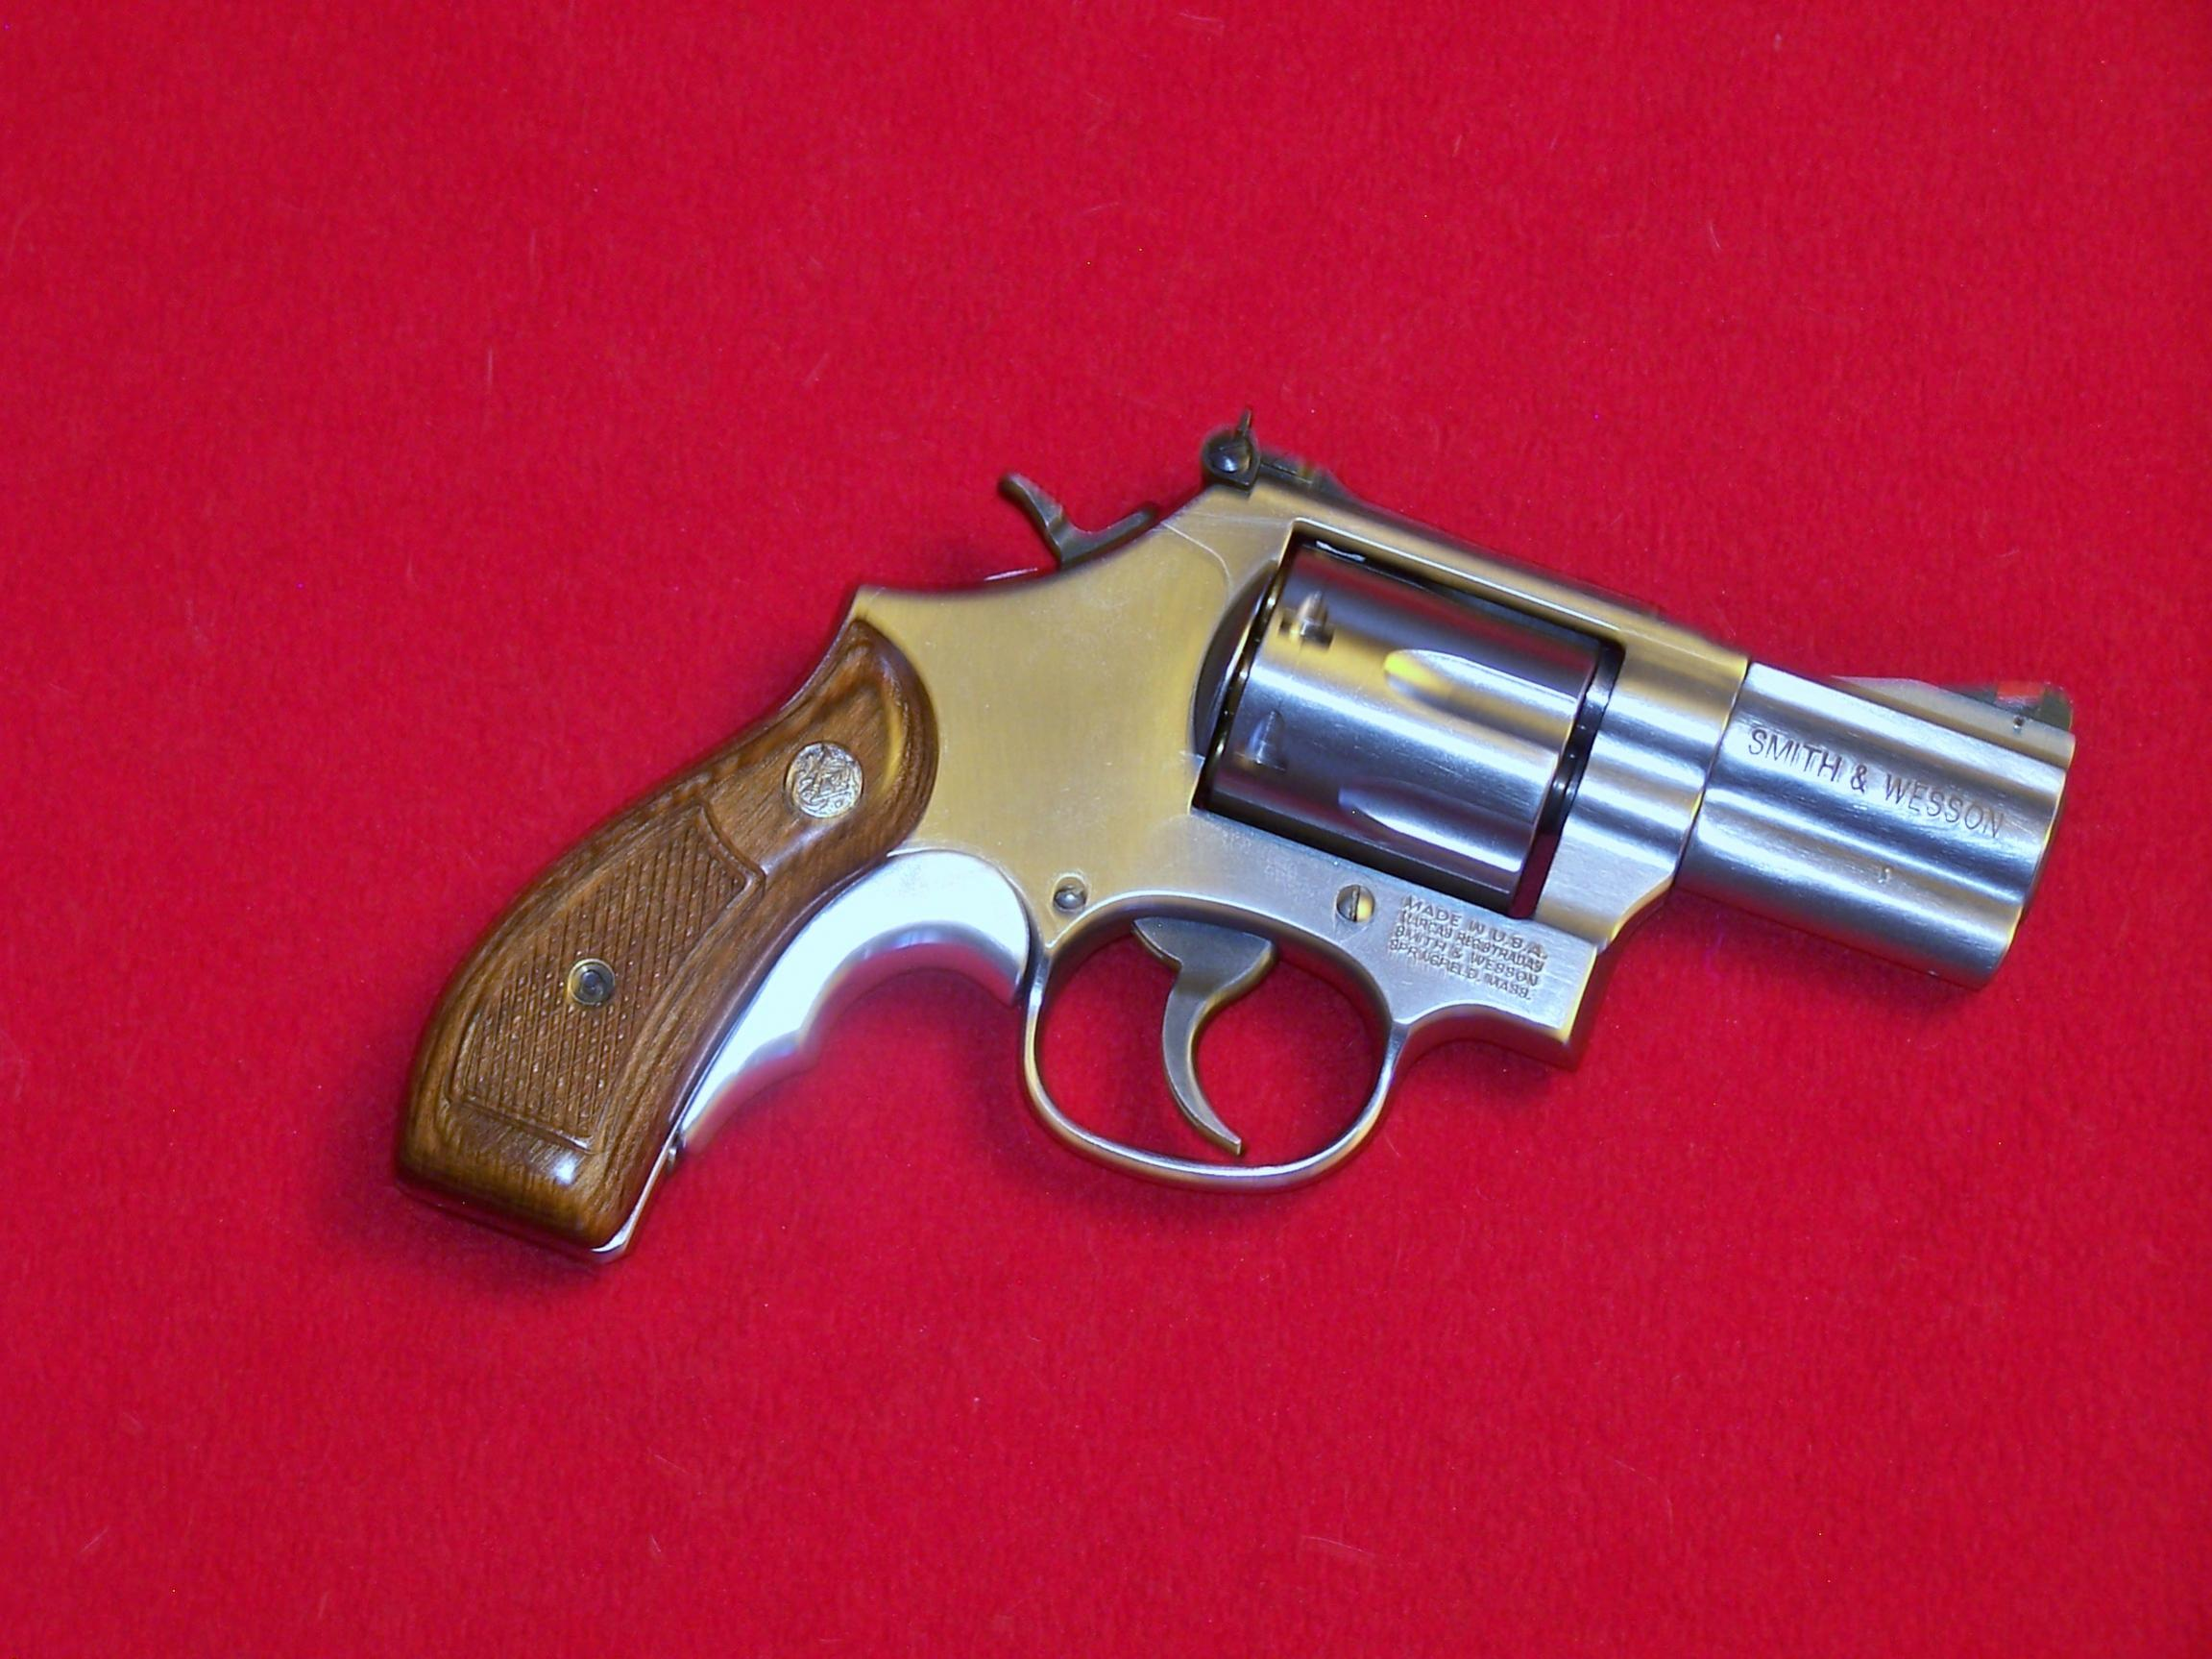 Carry a s&w model 686-8, .357 magnum?-001.jpg